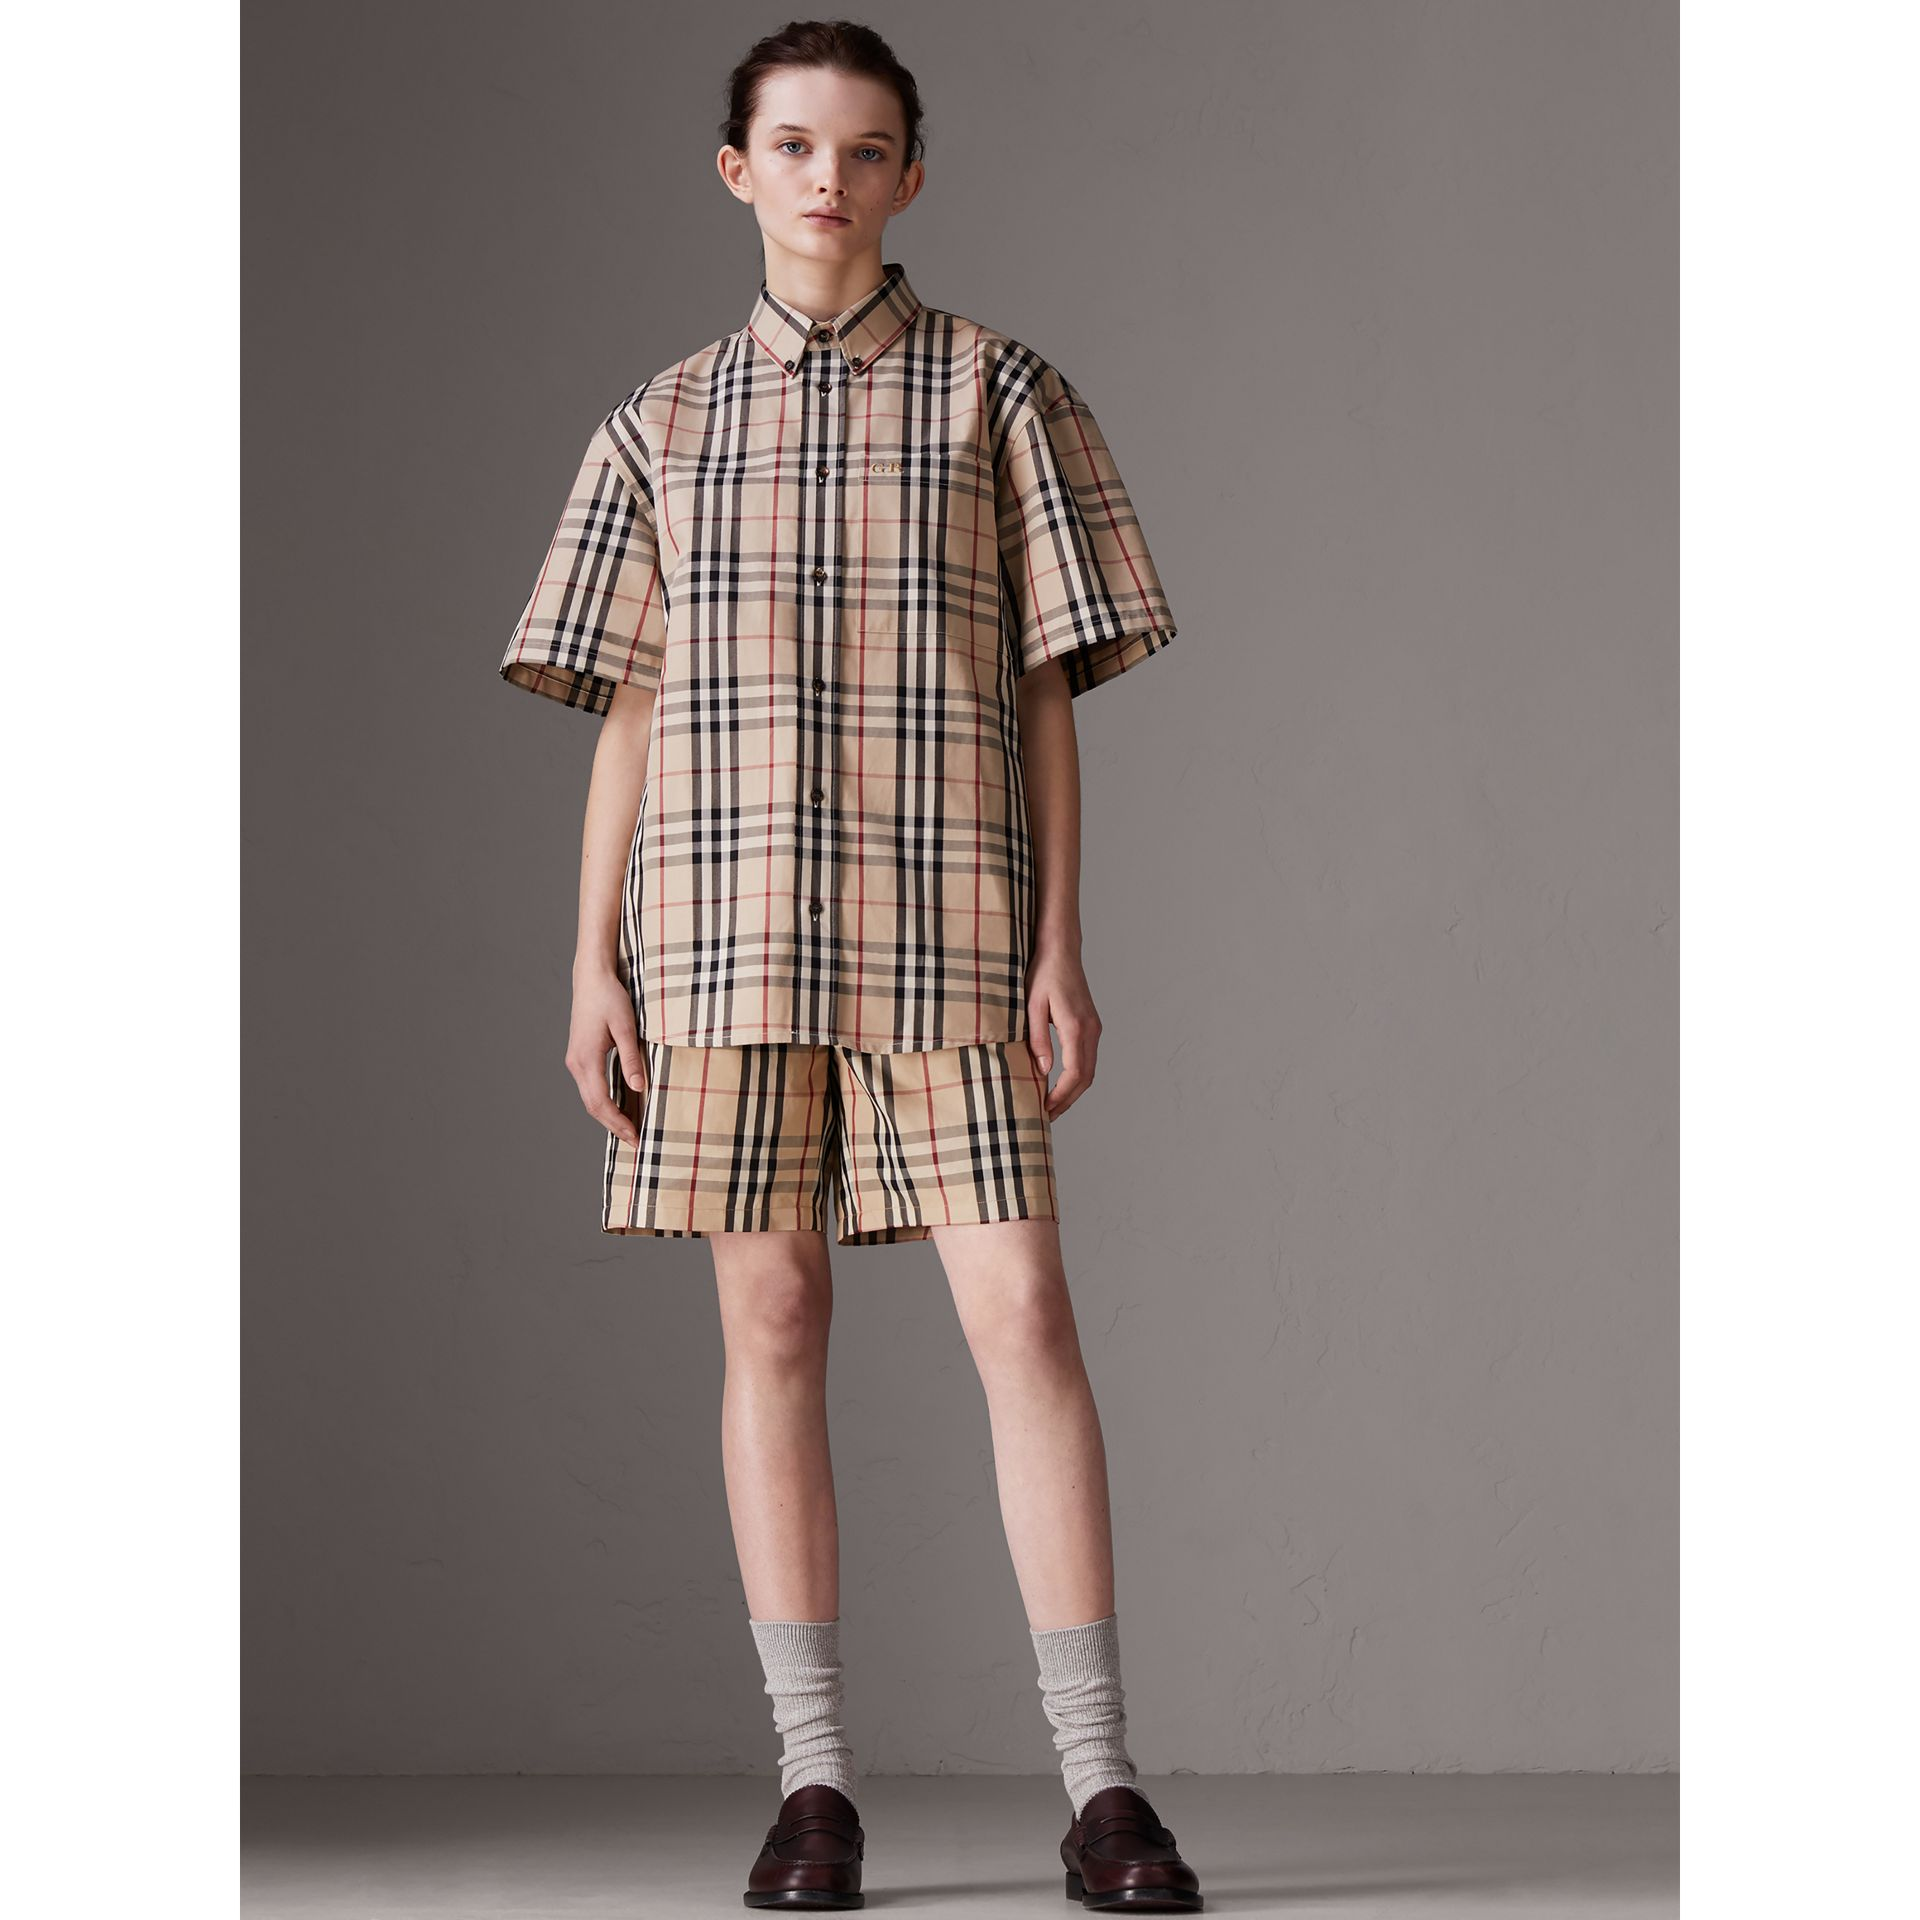 Gosha x Burberry Short-sleeve Check Shirt in Honey | Burberry Singapore - gallery image 3